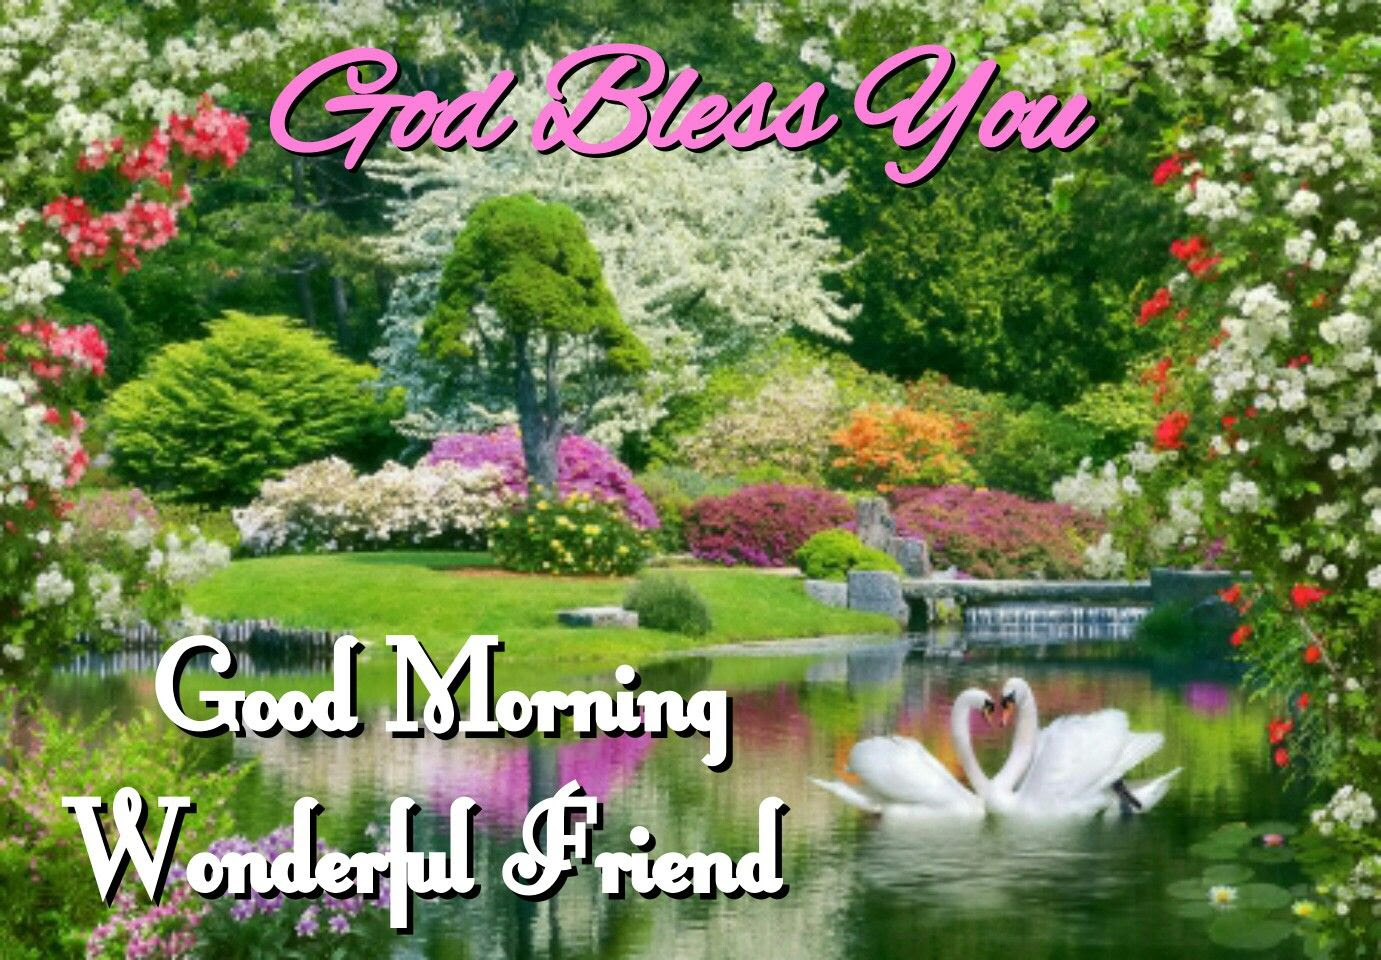 God Bless You Good Morning Wonderful Friend Pictures Photos And